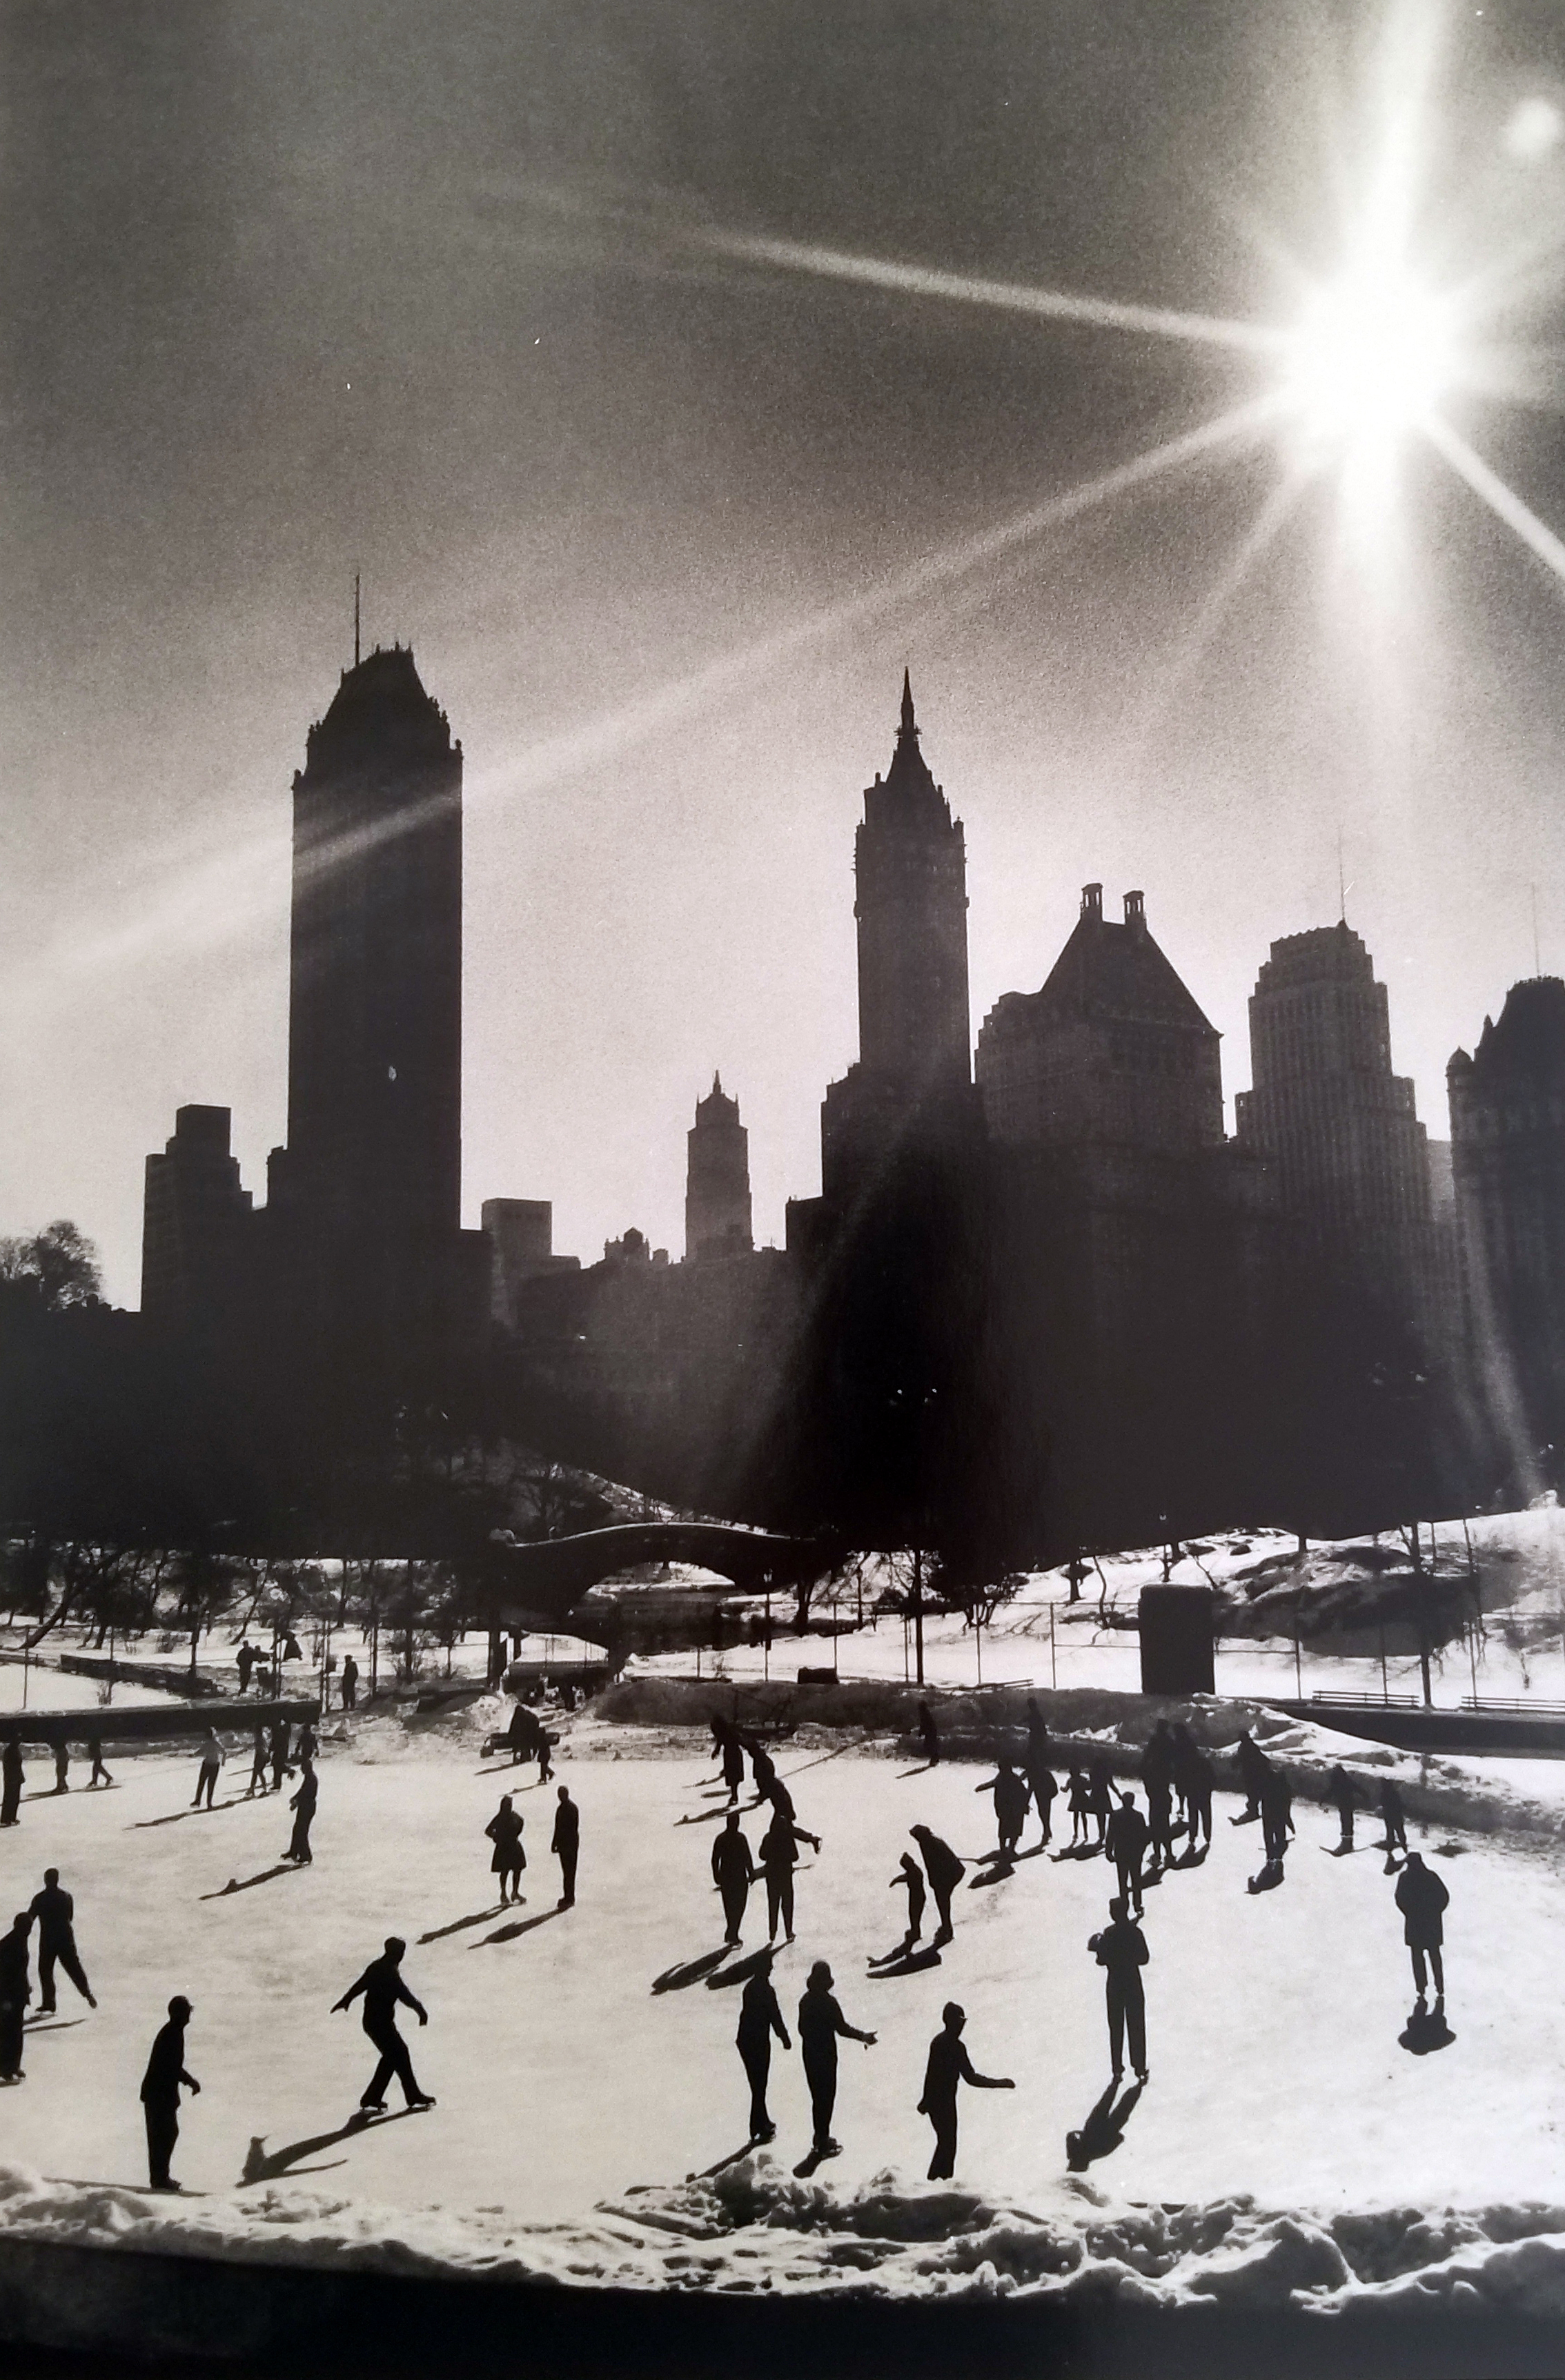 Wolhman's Skating Rink, Central Park, 1967